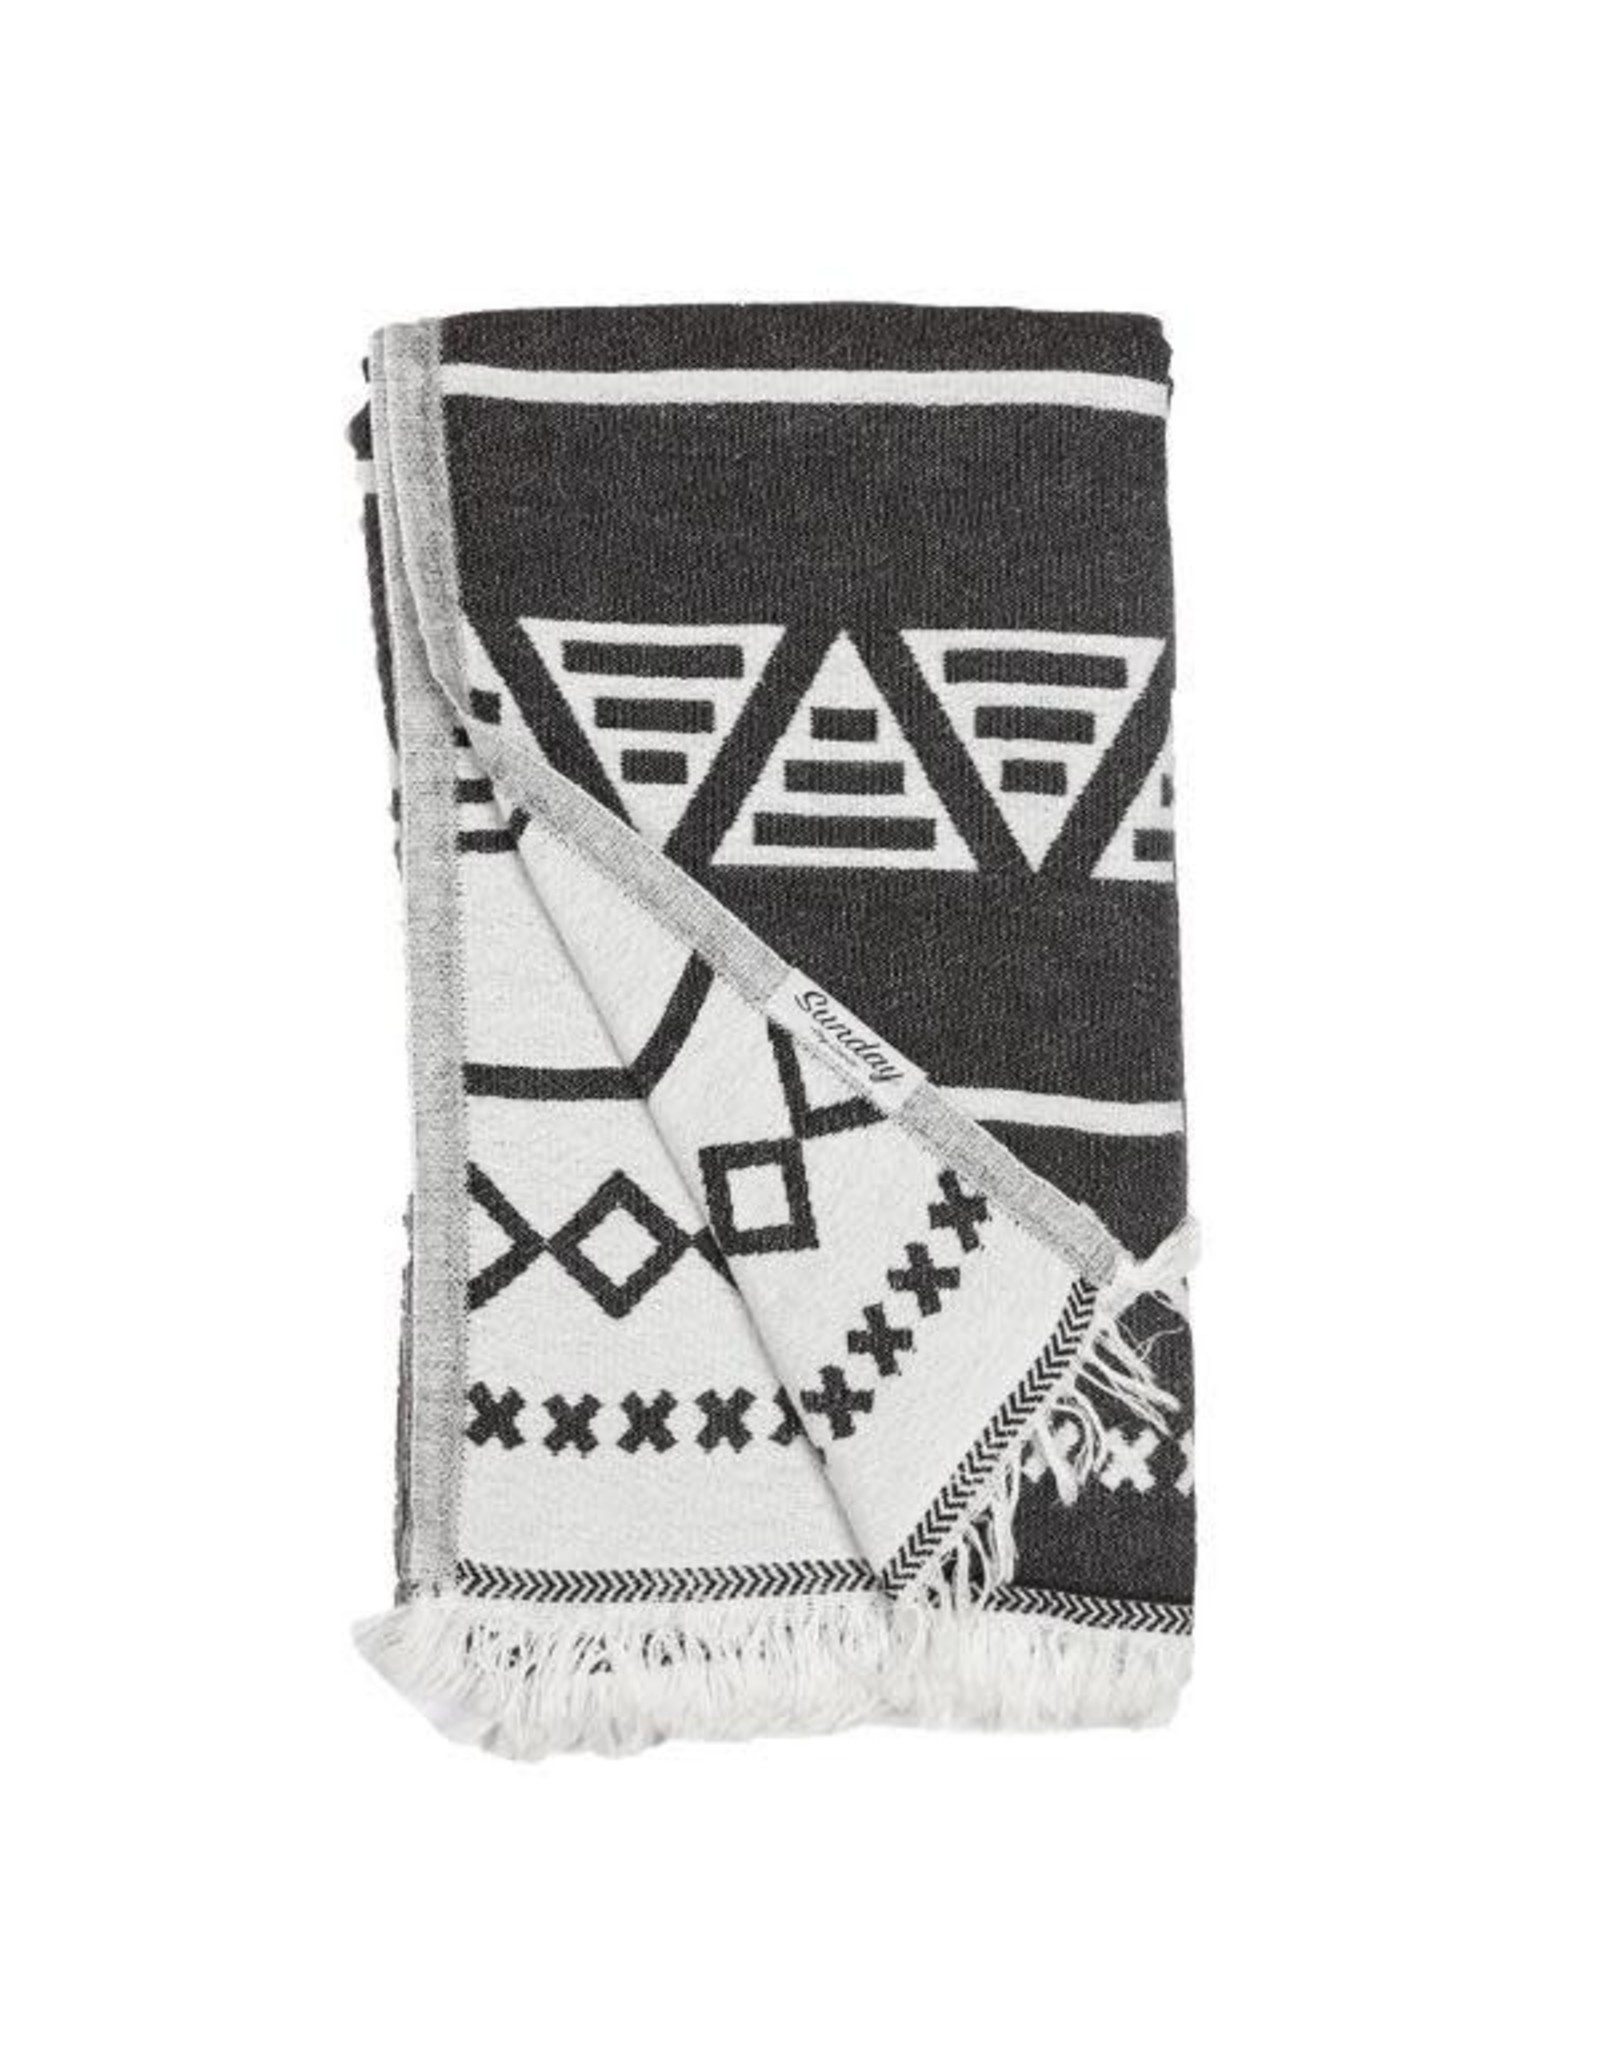 Sunday Dry Goods Personal Size Double Faced Aztec Towel 95 x 170 Cotton